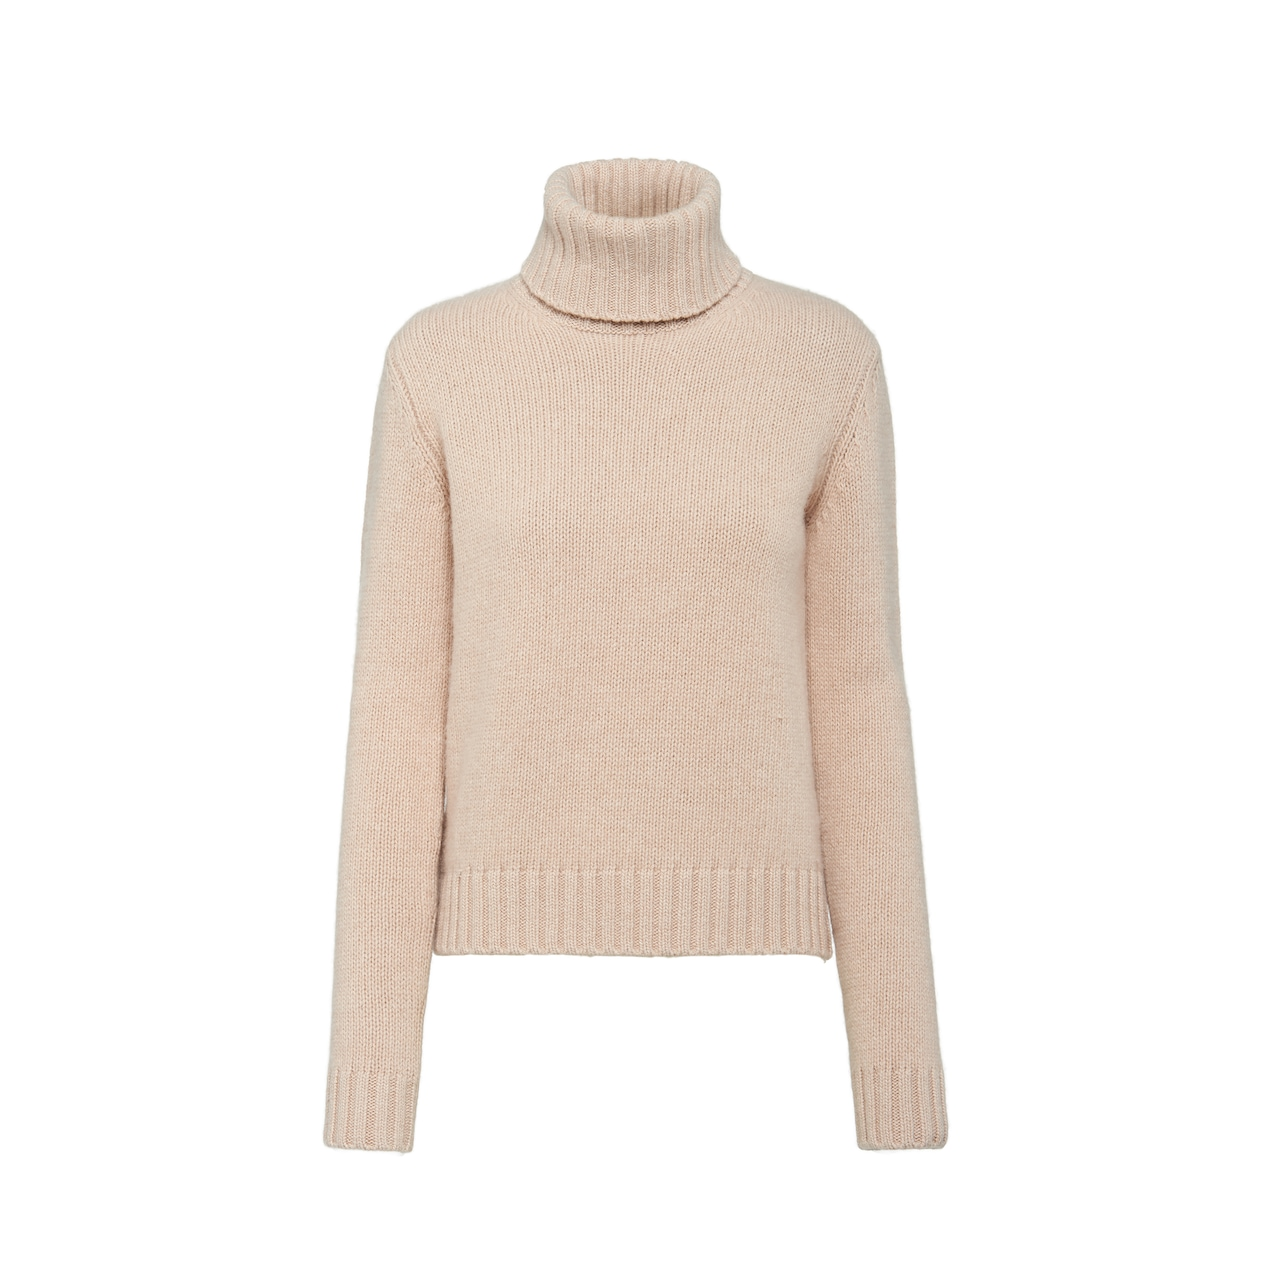 Prada Wool and cashmere sweater 1